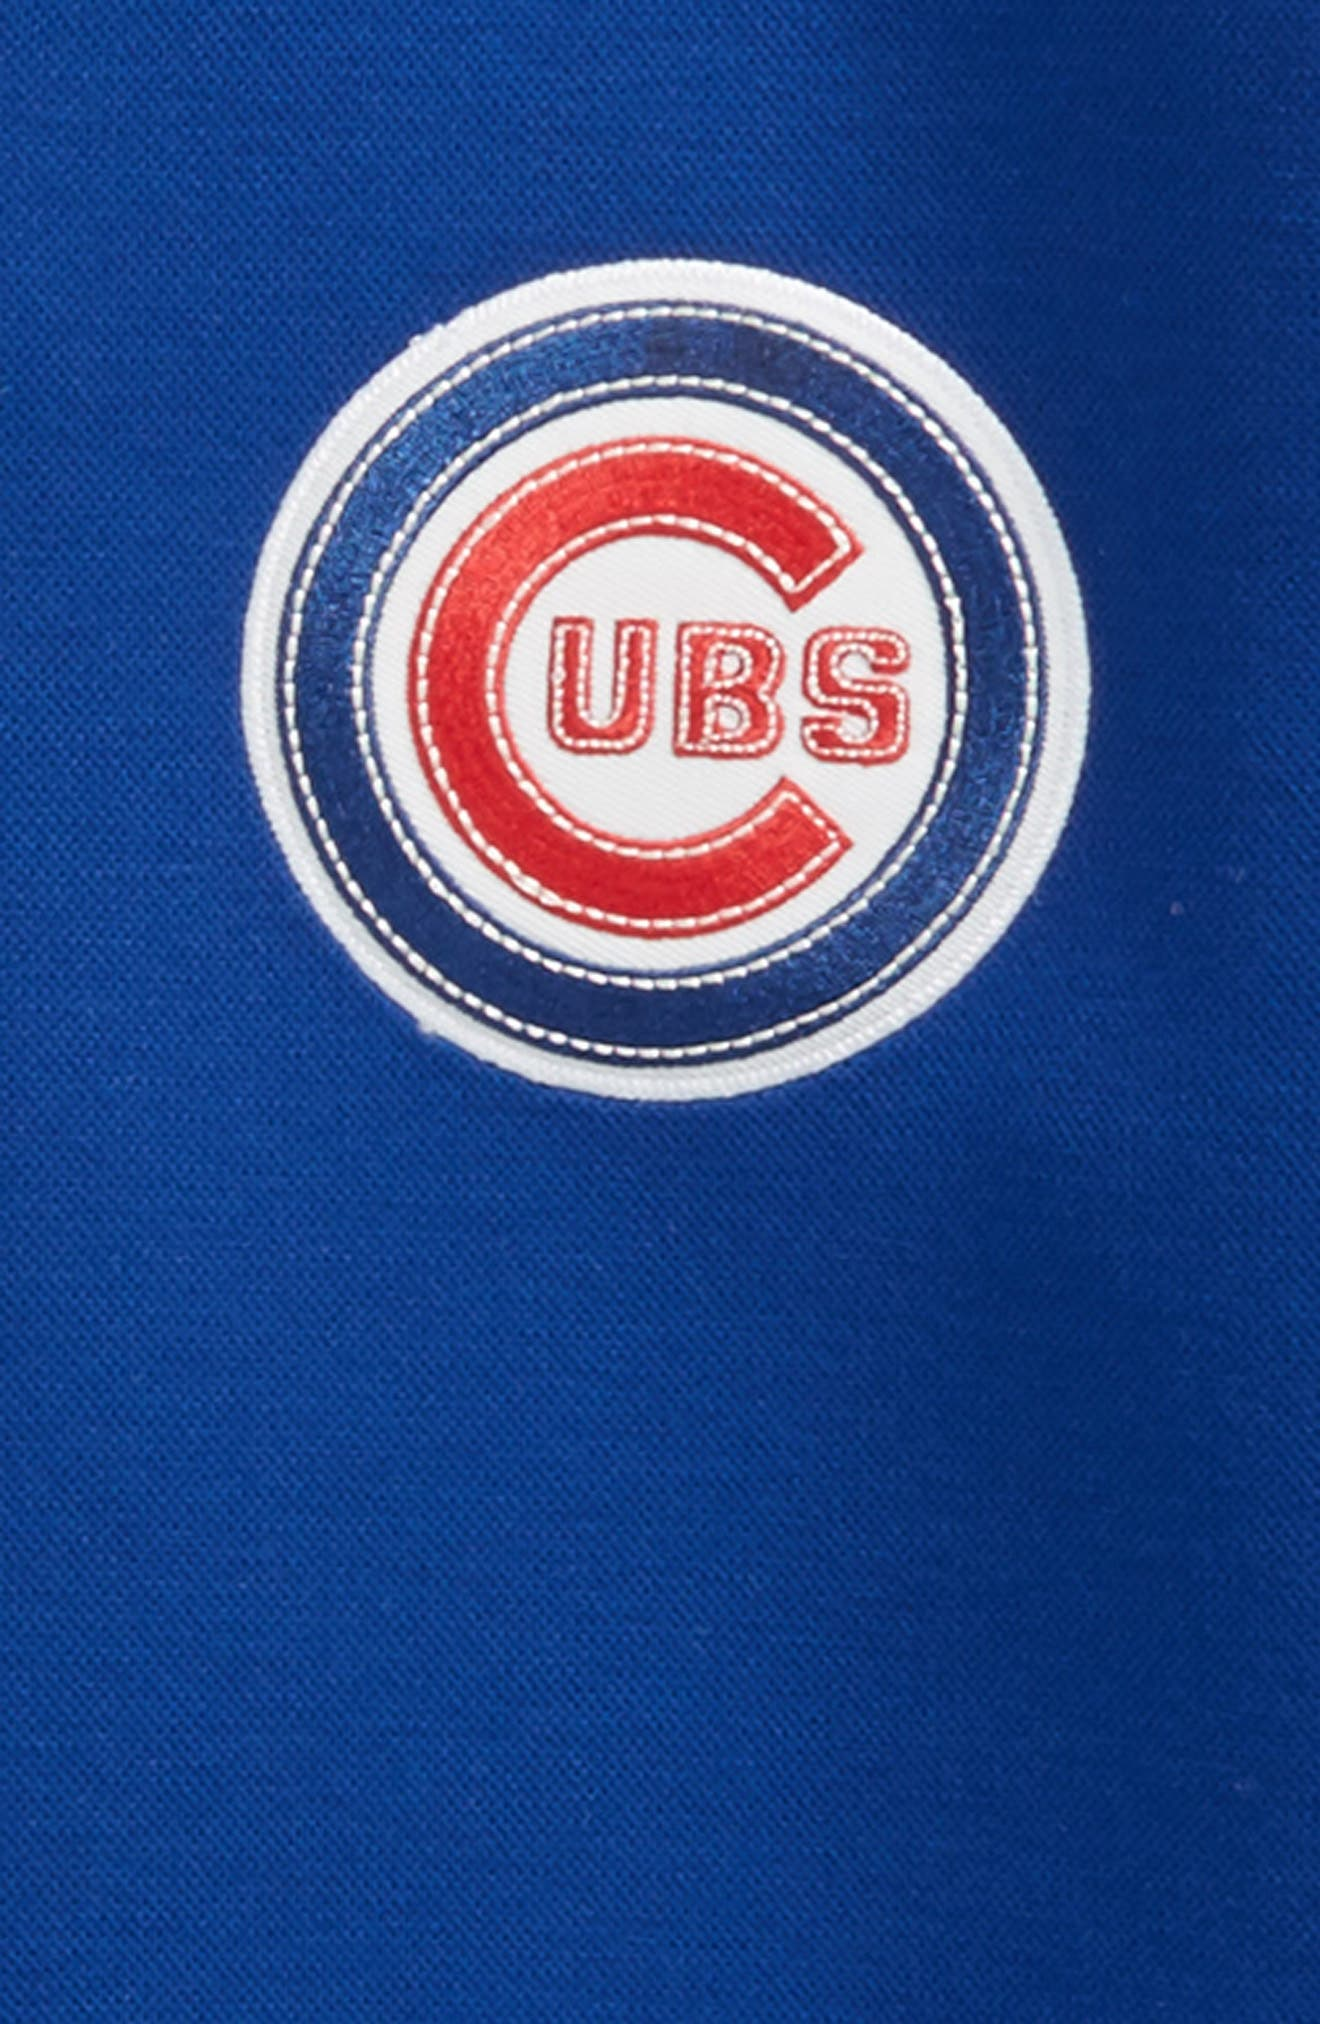 Classical Chicago Cubs Knit Varsity Jacket,                             Alternate thumbnail 2, color,